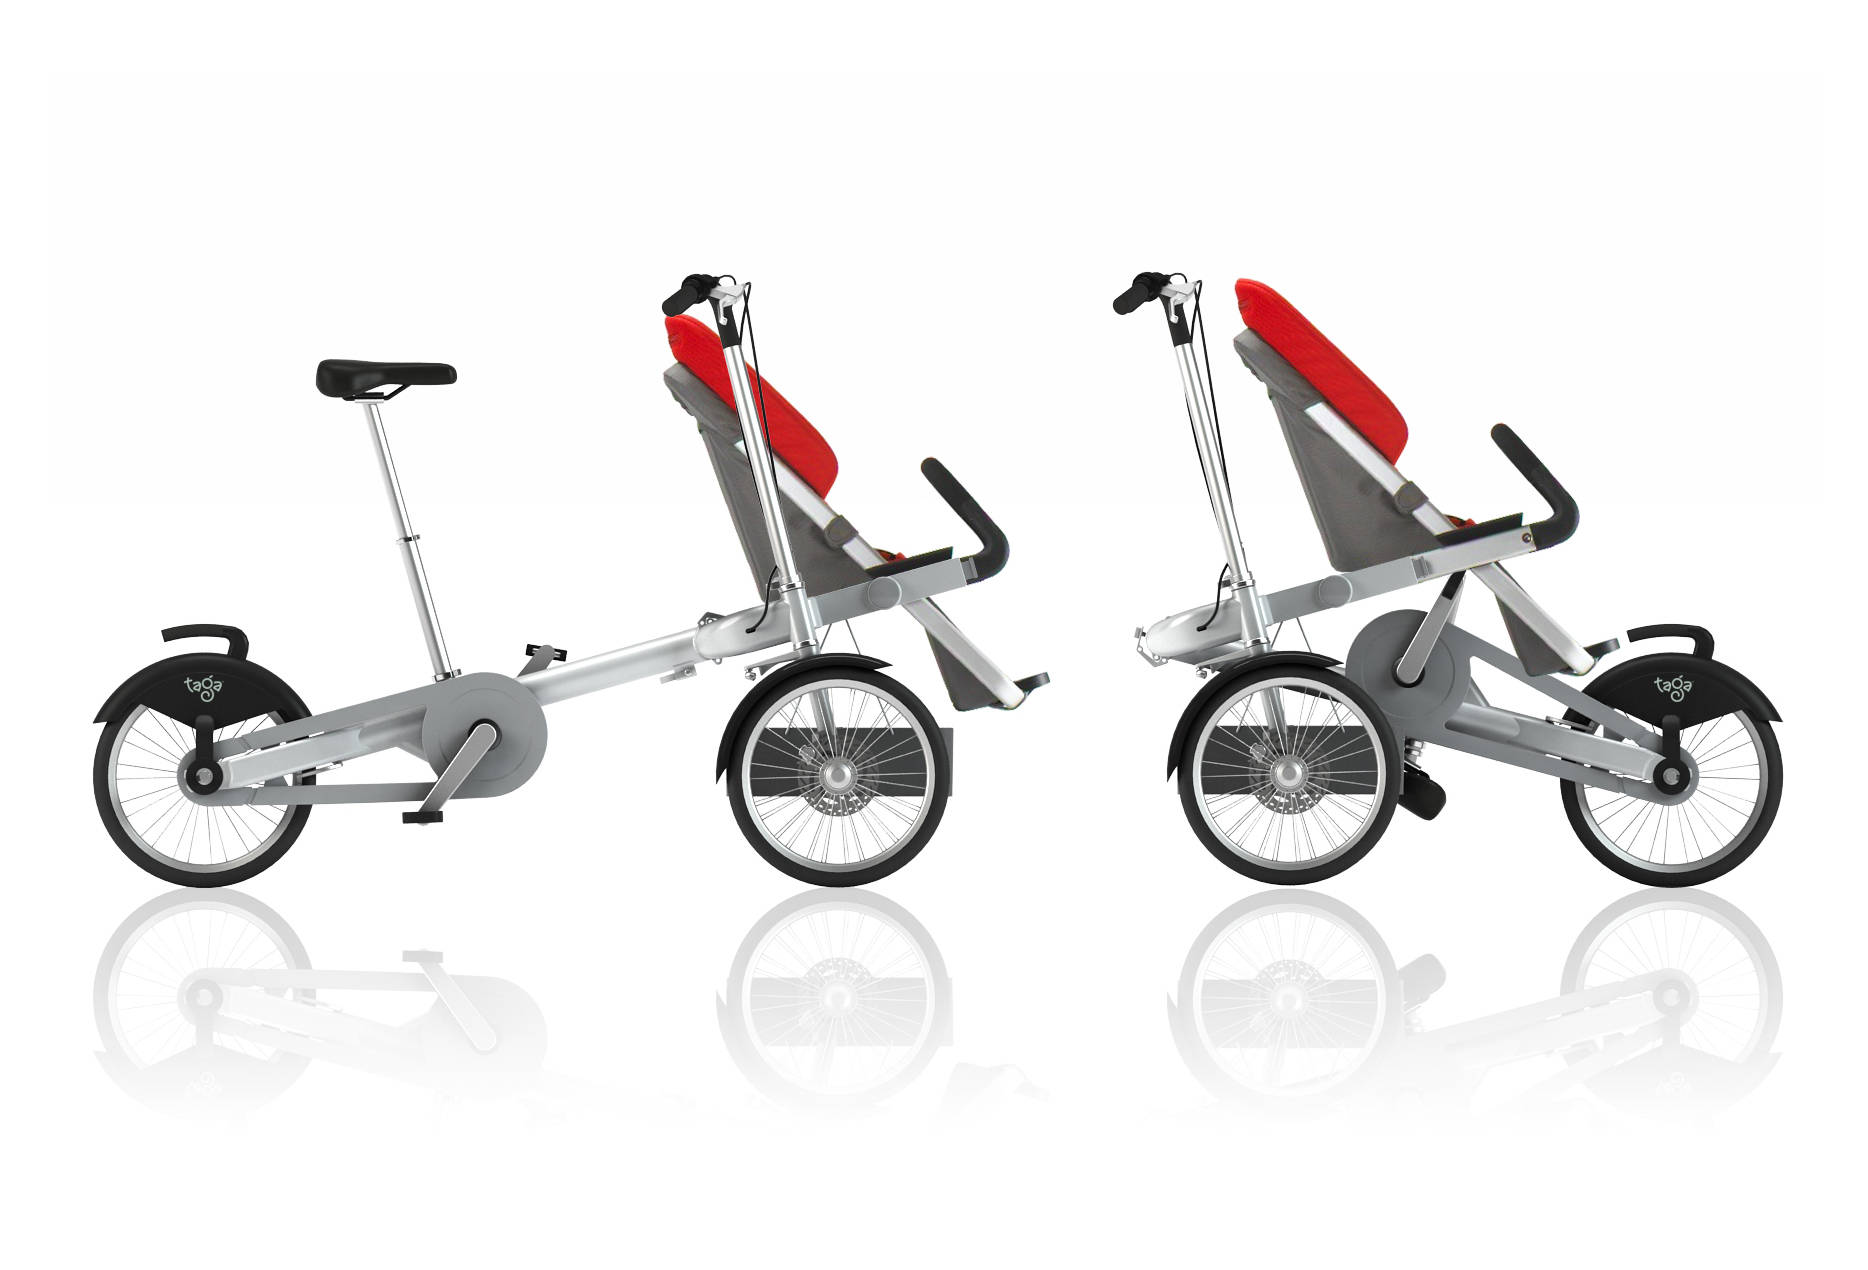 Taga Convertible – Bike and Baby Stroller – Daily Cool Gadgets